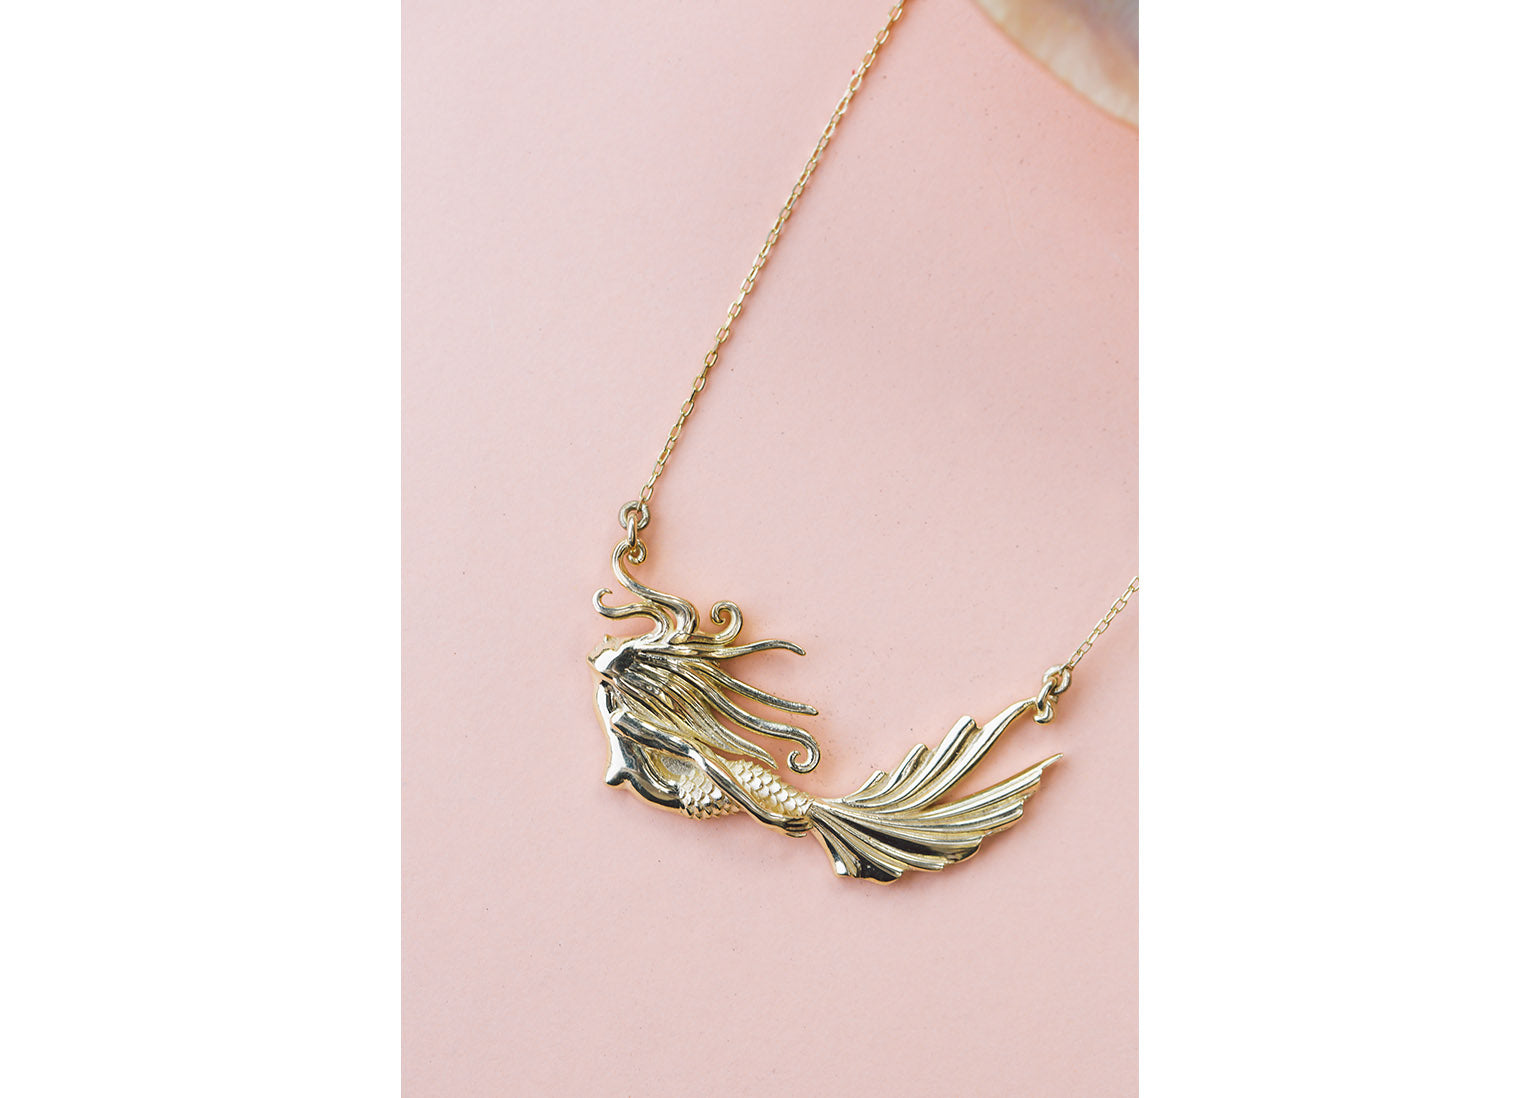 A beautiful photograph of a mermaid pendent made from sterling silver and finished in gold. This unique piece of jewellery is designed by Lucky Culture